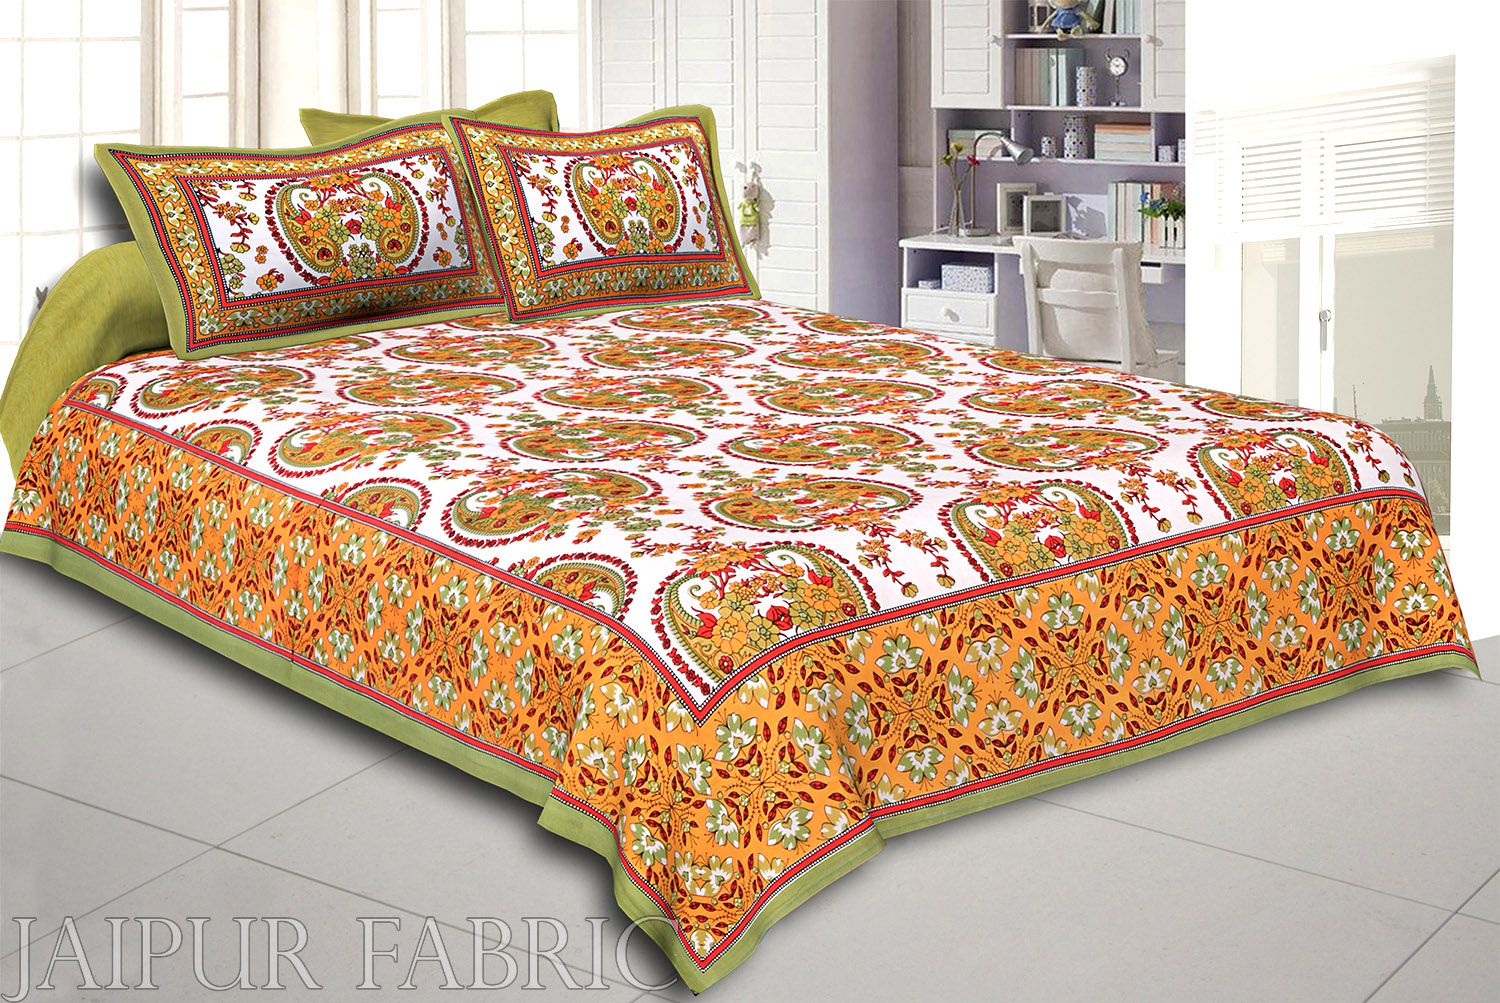 Green Keri and Floral Print Cotton Double Bed Sheet